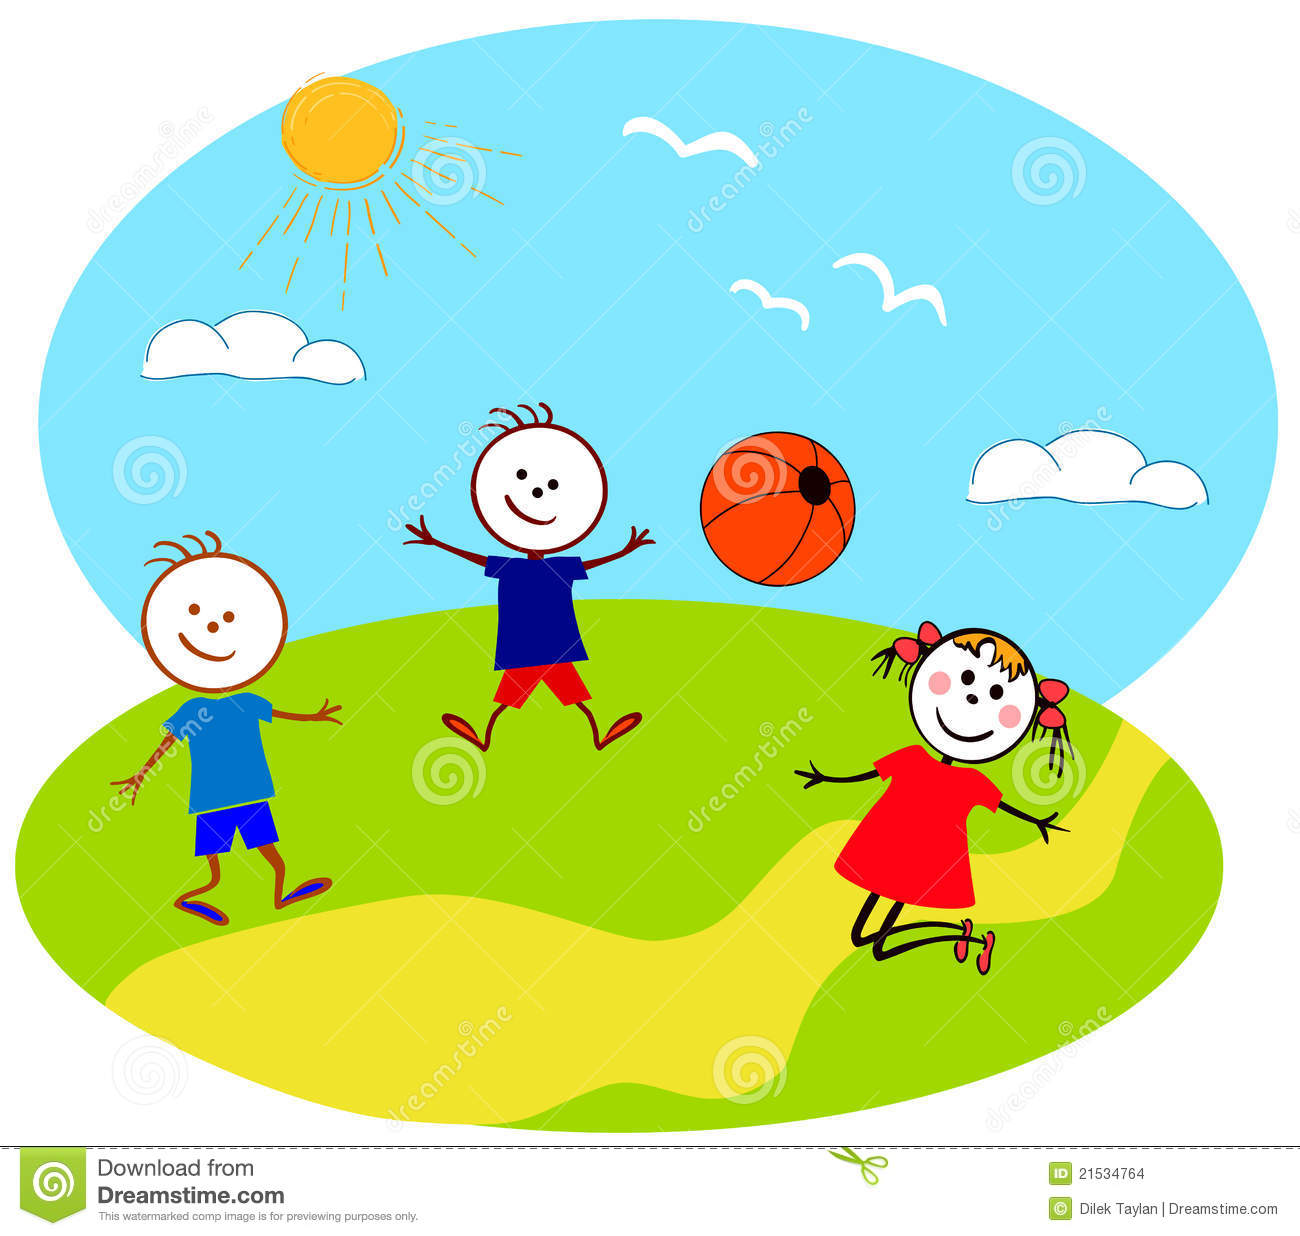 Free clipart children playing outside svg transparent stock Playing Outside Clipart Clipart Suggest - Free Clipart svg transparent stock